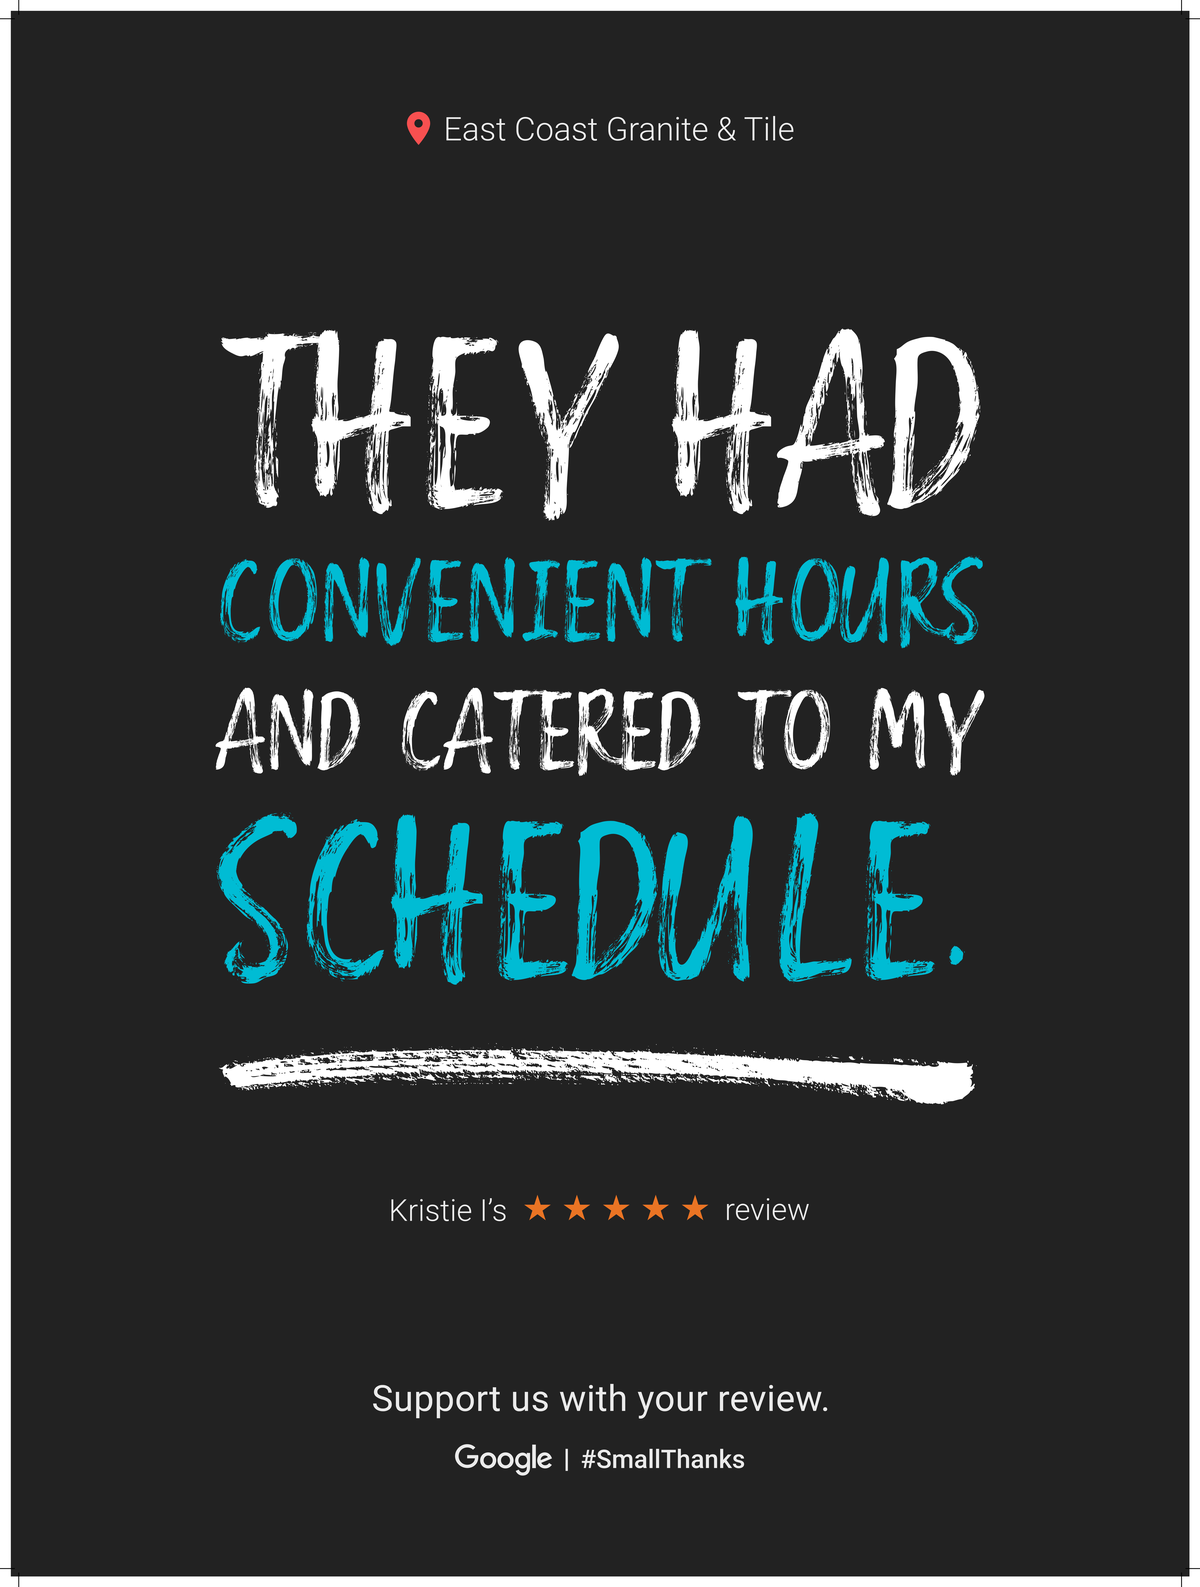 Google Review Greenville from Kristie I - They had convienient hours and catered to my schedule